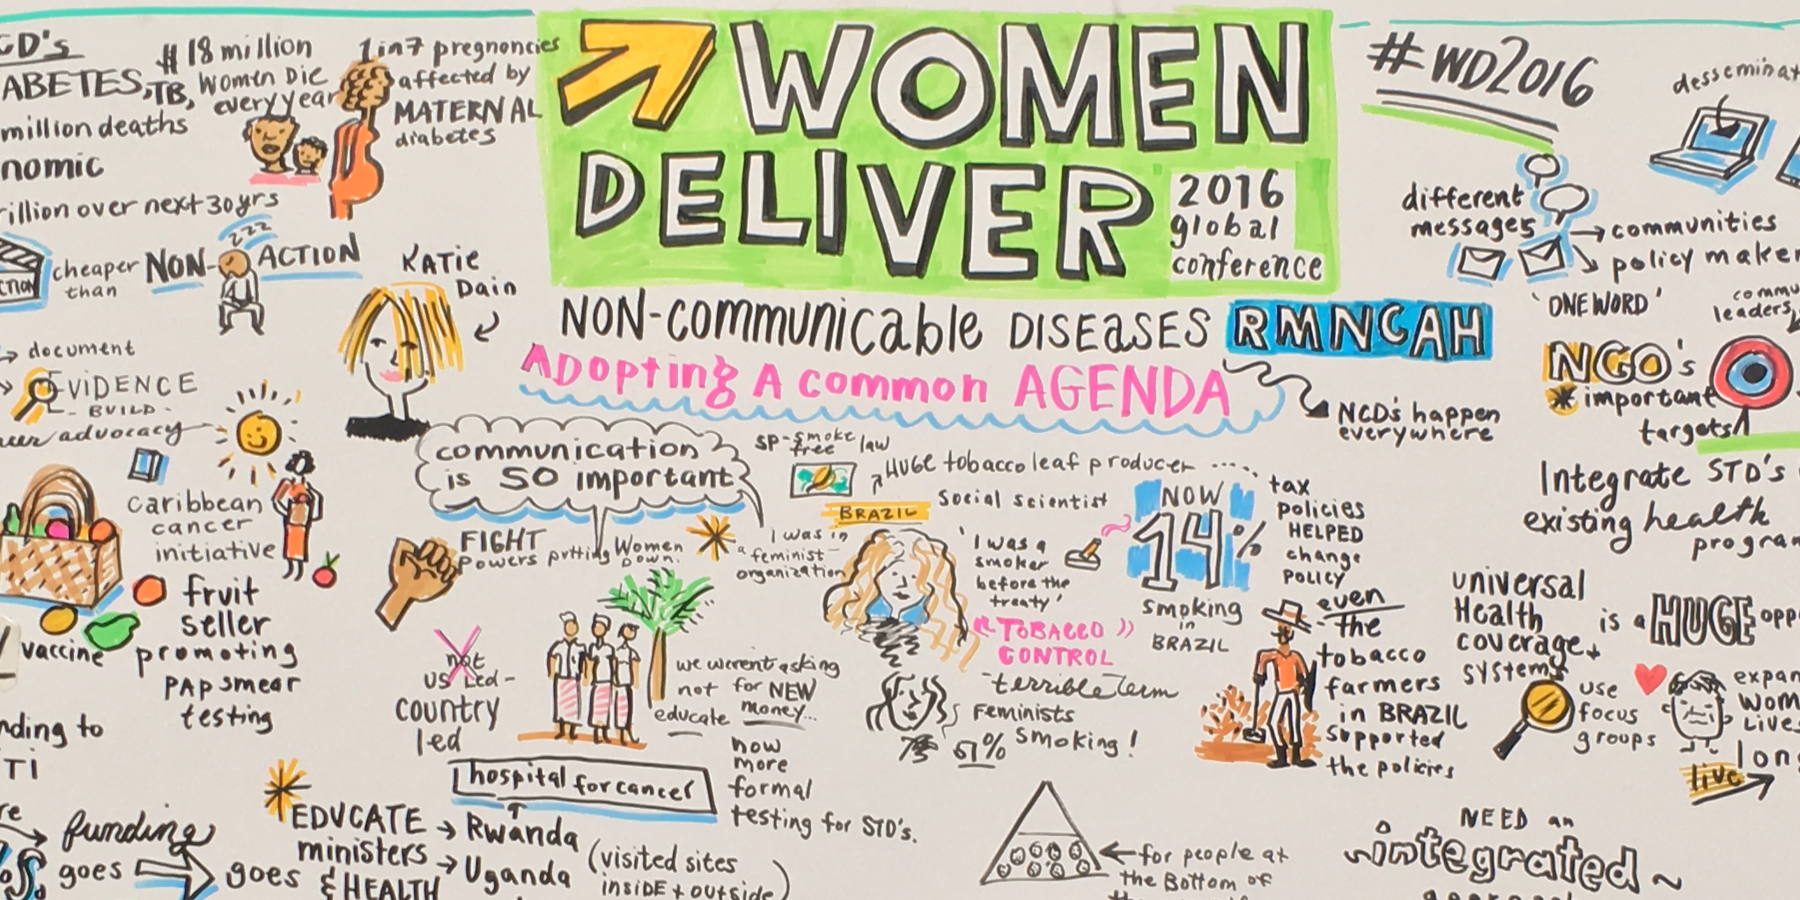 Visual notes from the joint advocacy session on Women and NCDs